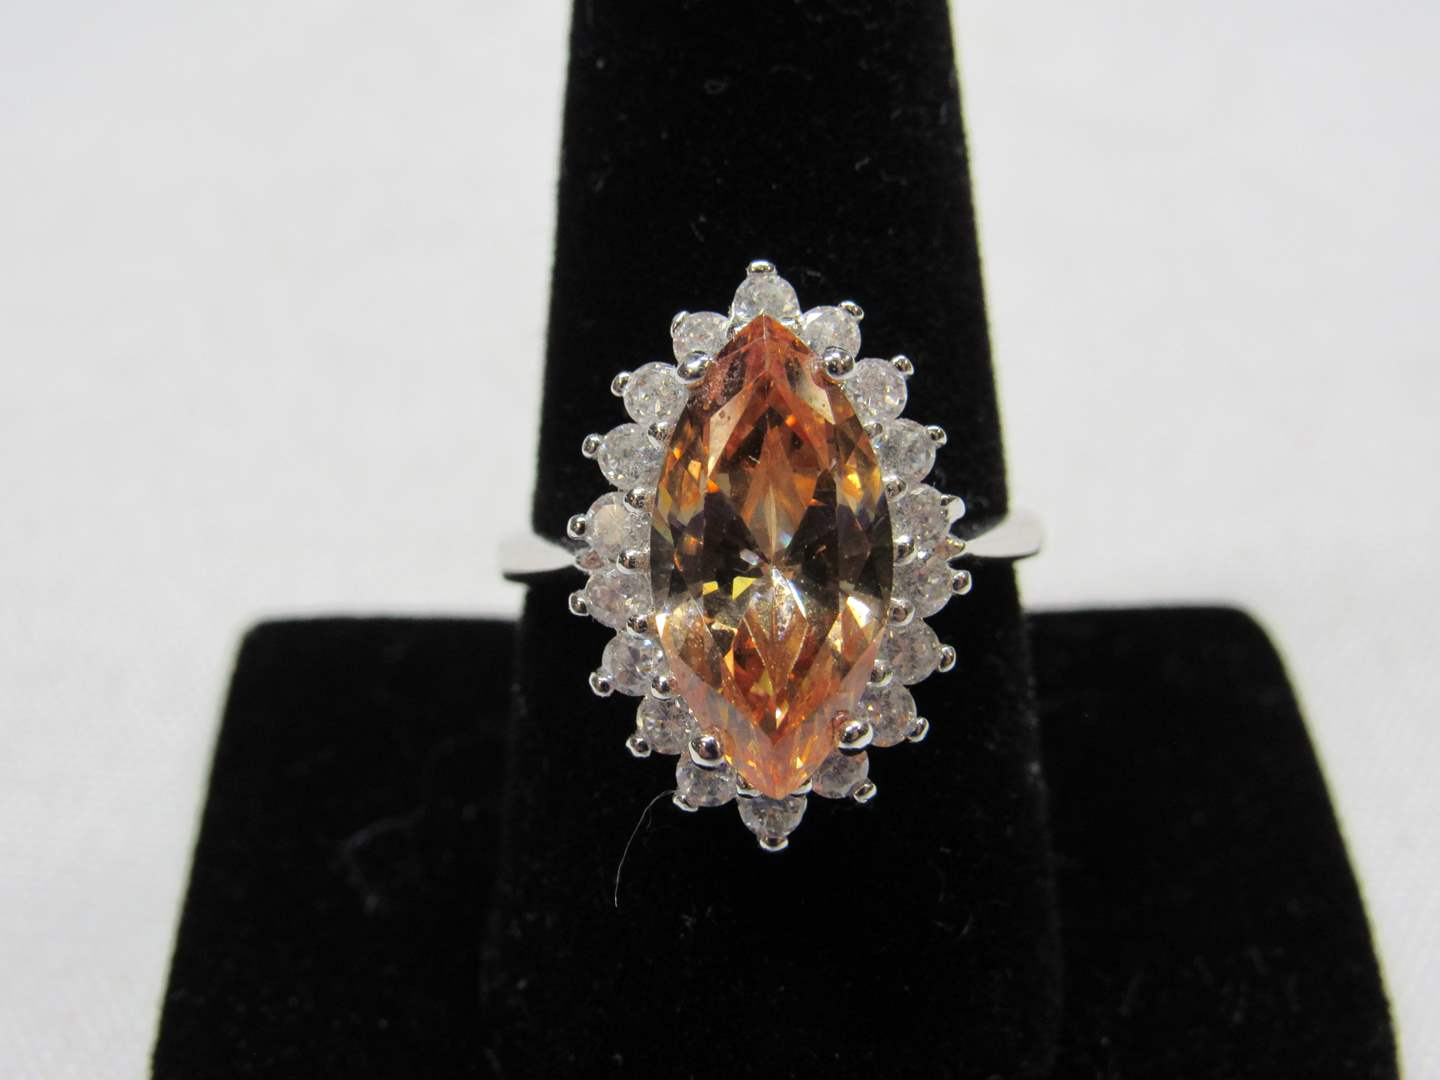 Lot # 214  WOW BLING large orange & CZ's sterling silver ring size 9 (main image)